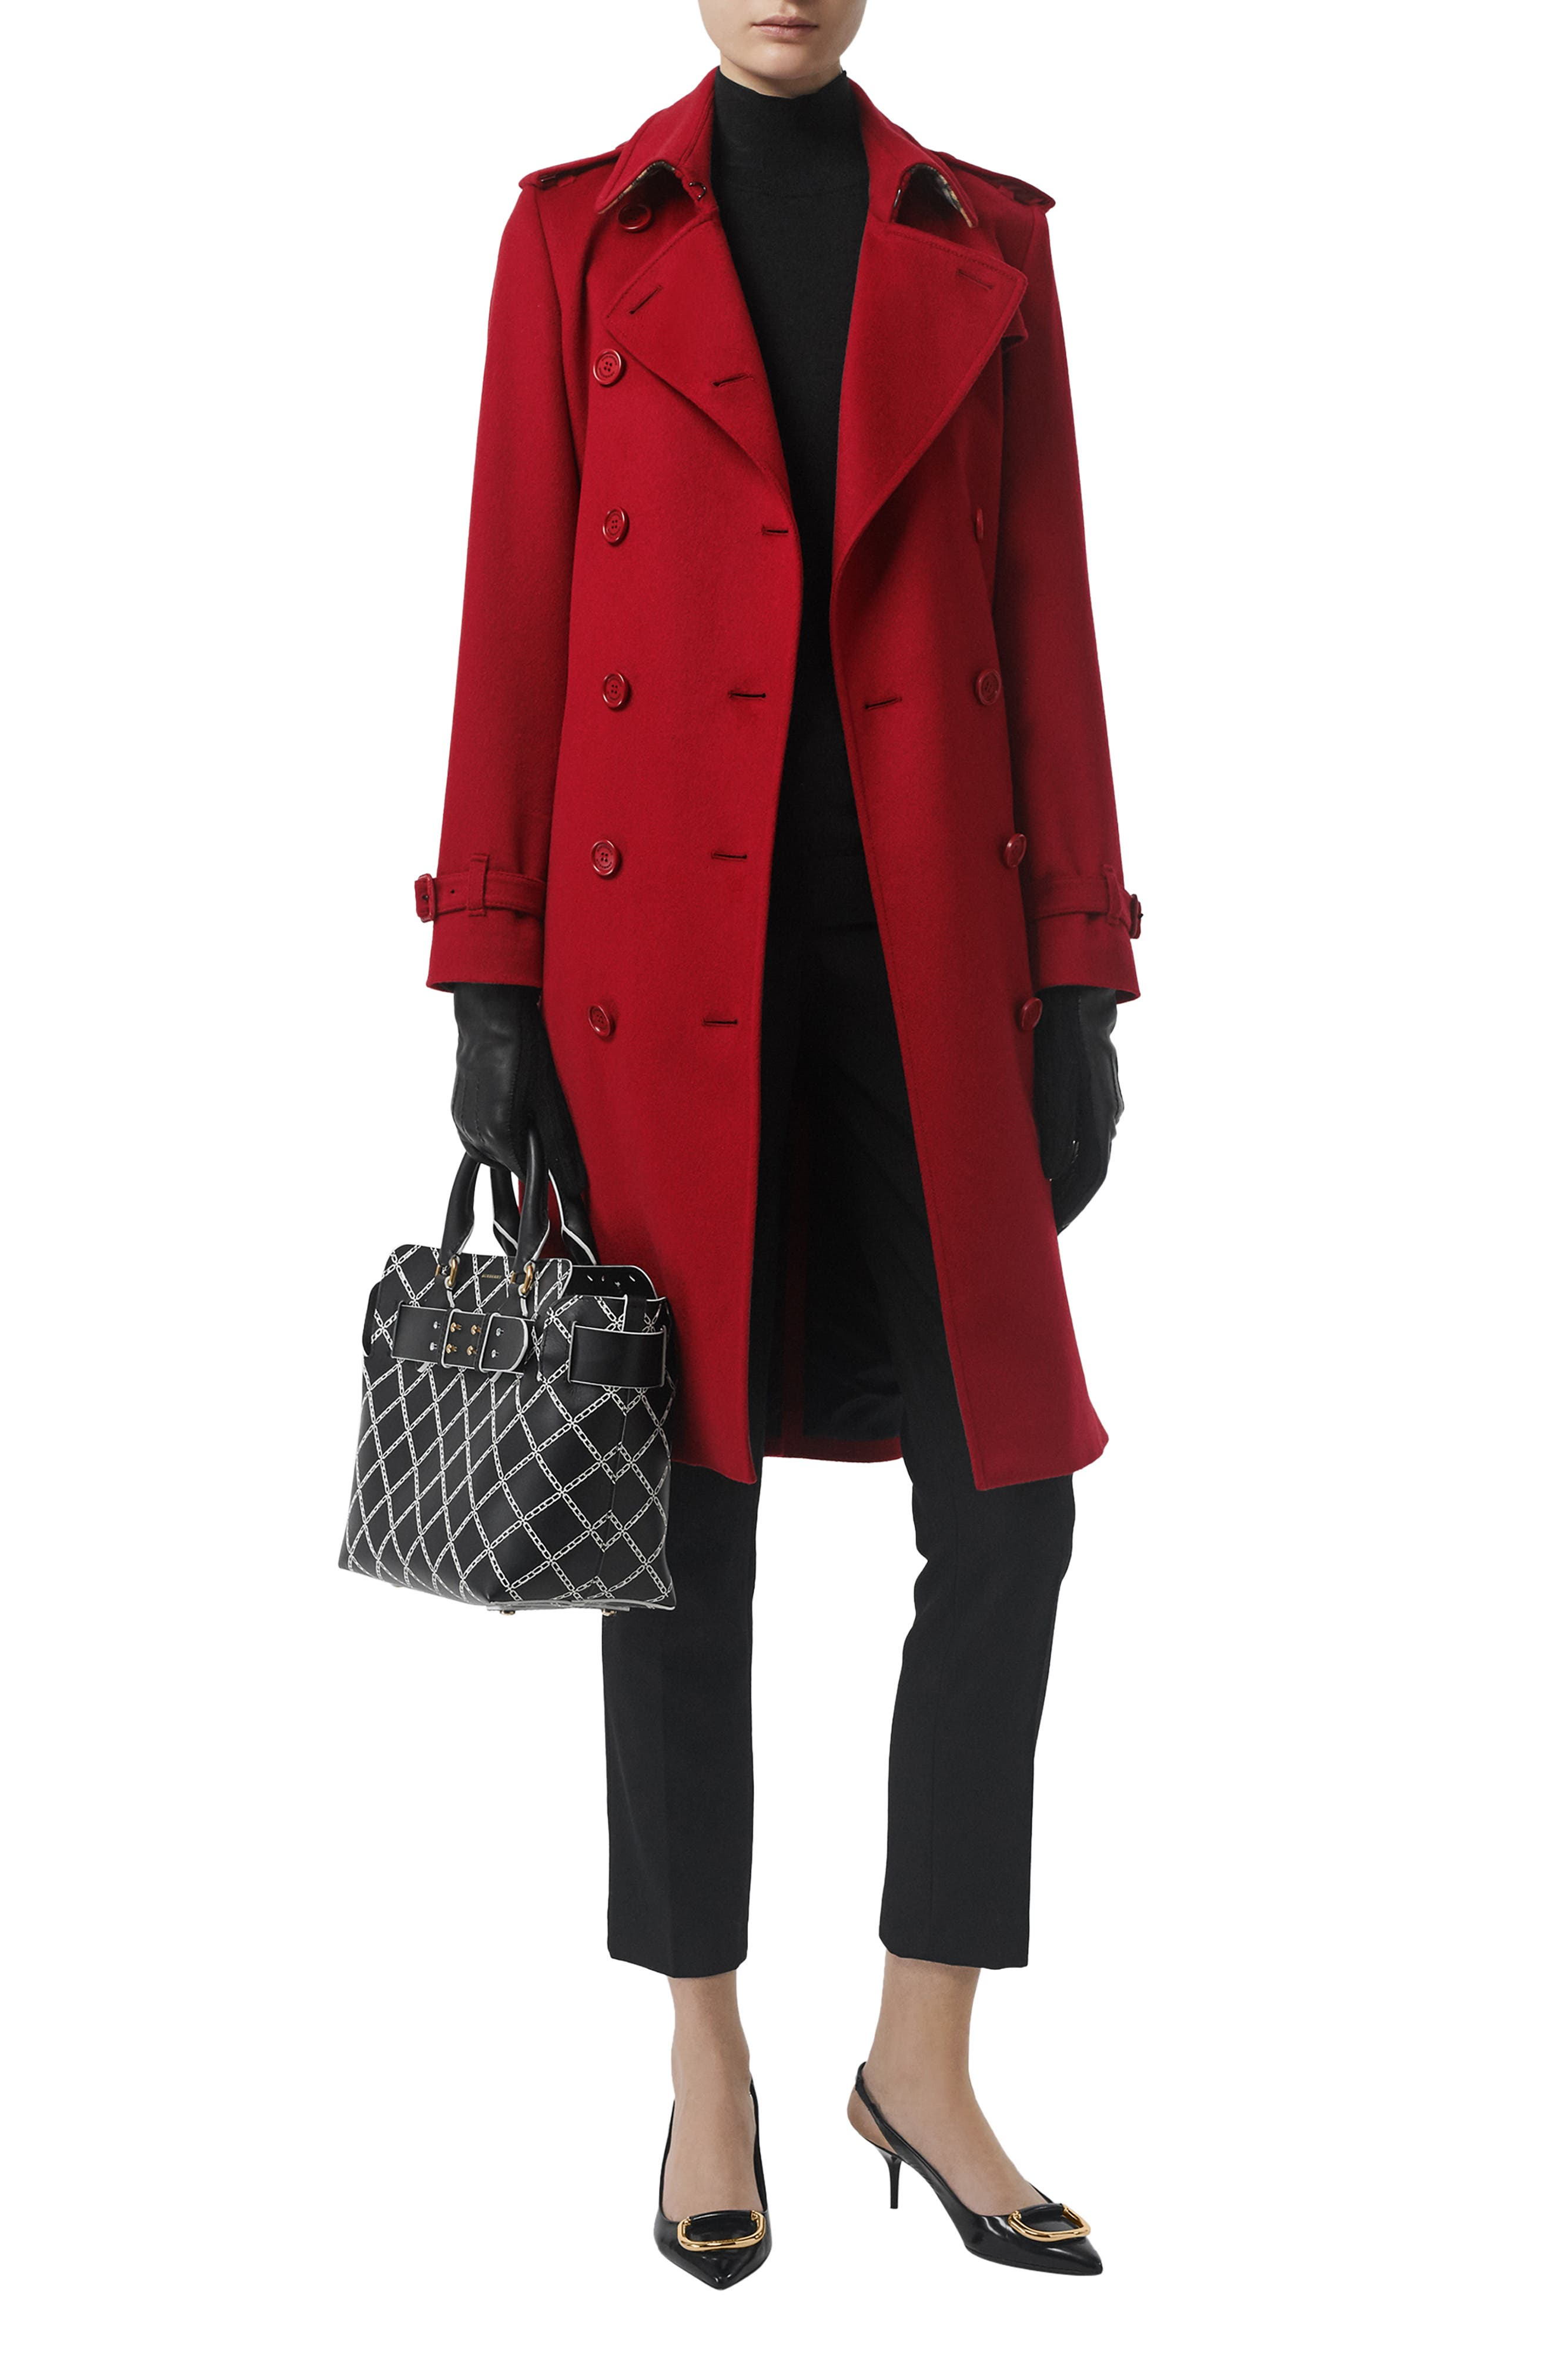 Kensington Cashmere Trench Coat,                             Alternate thumbnail 7, color,                             PARADE RED